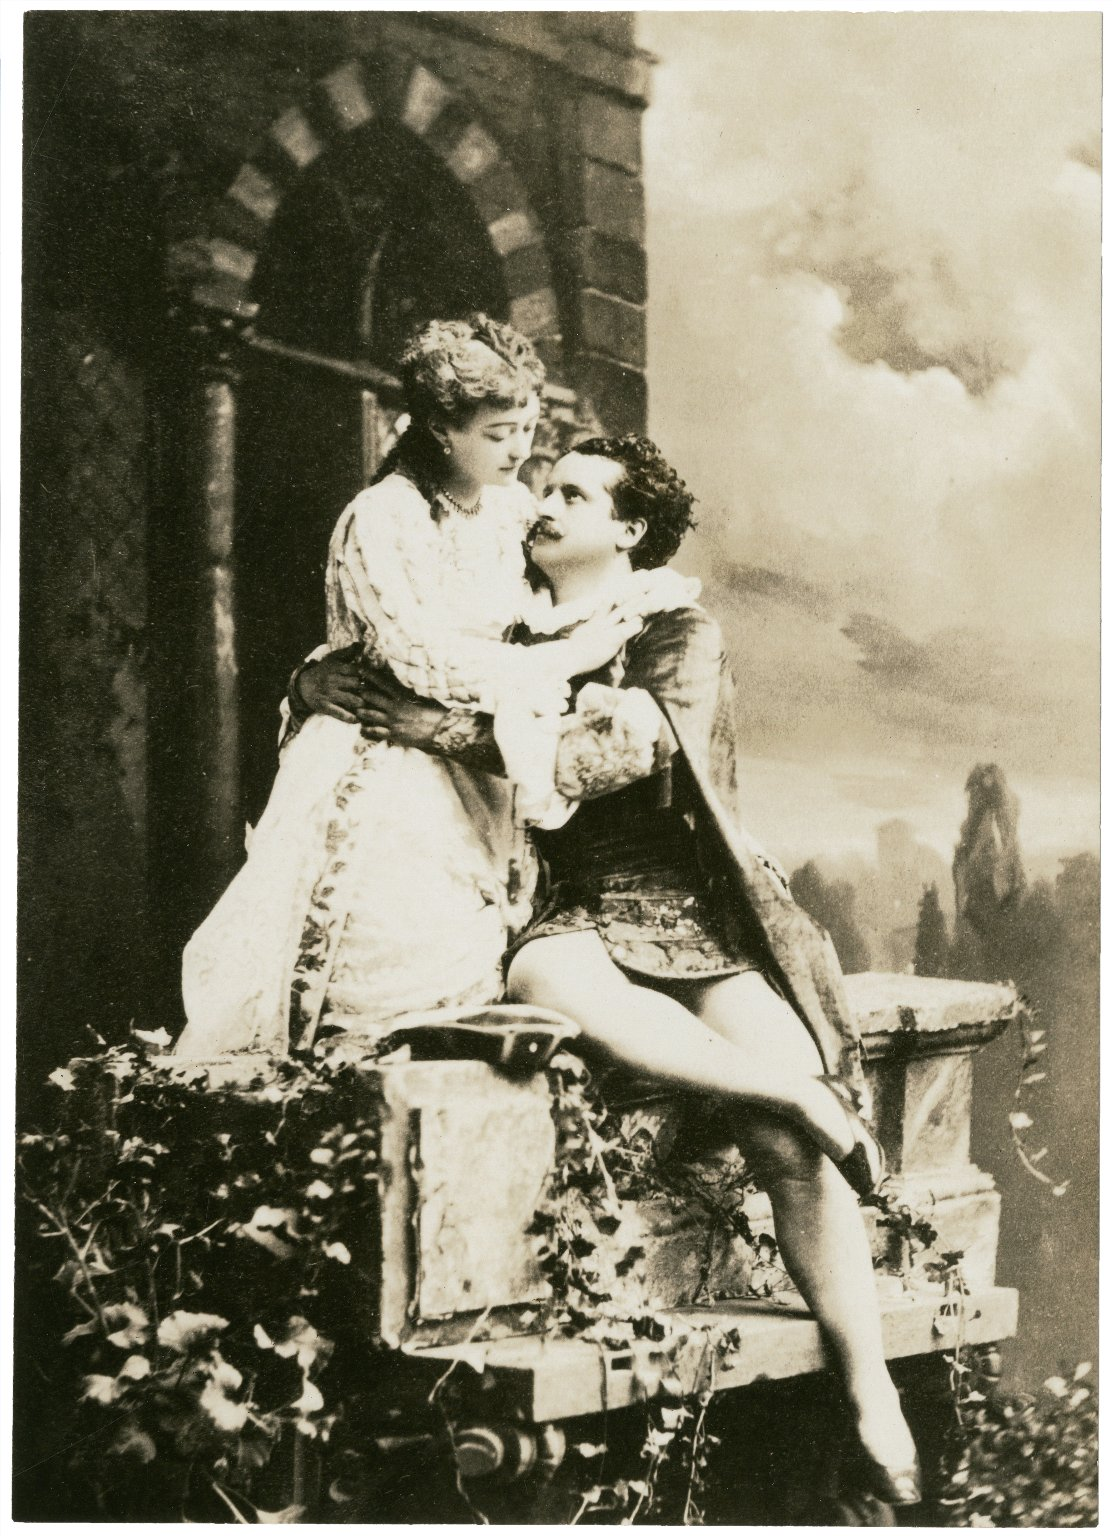 Maud Granger and Lawrence Atkins as Romeo and Juliet [graphic].